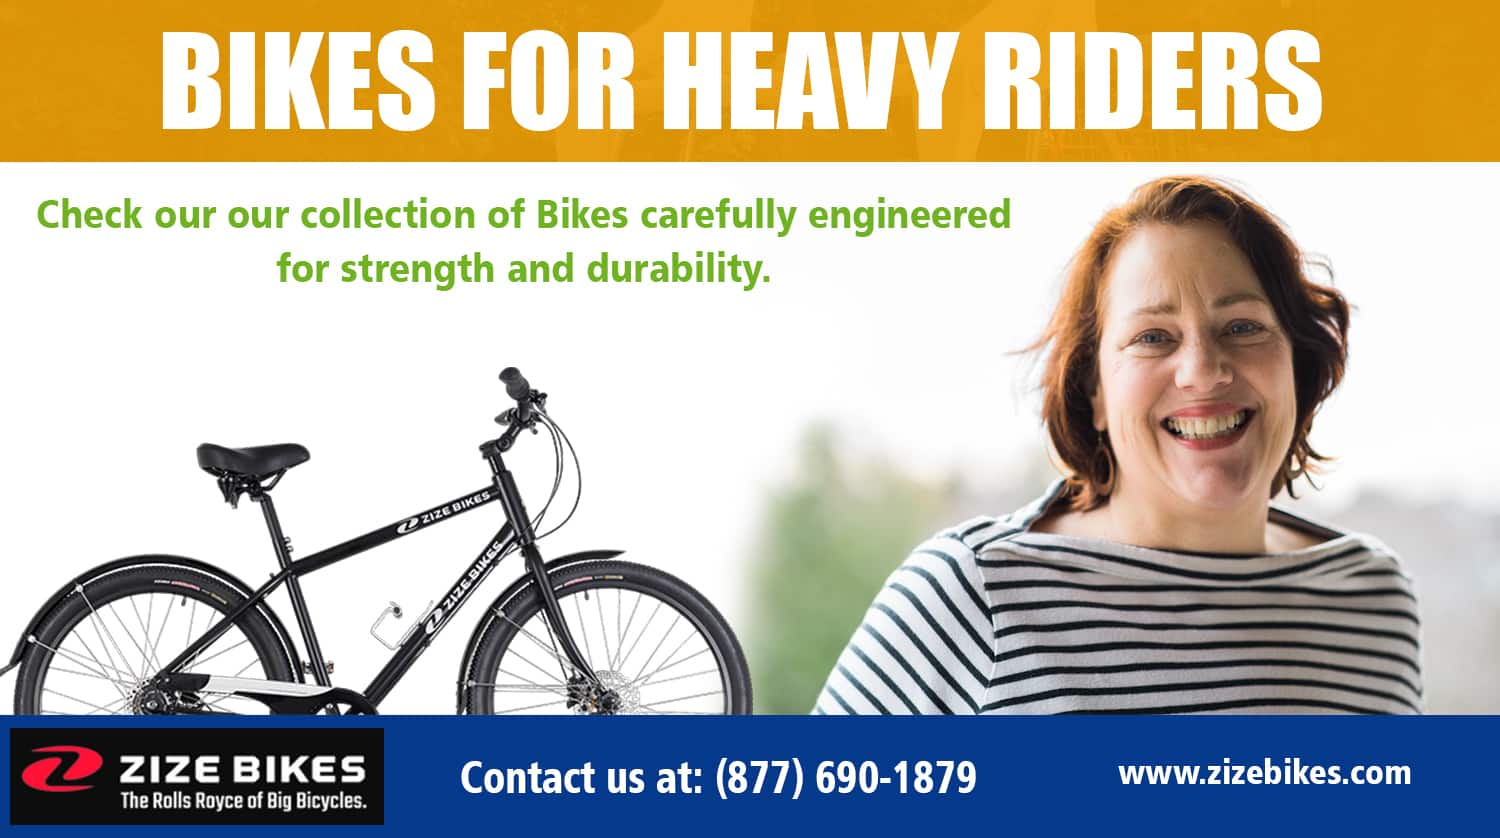 Bikes for Heavy Riders